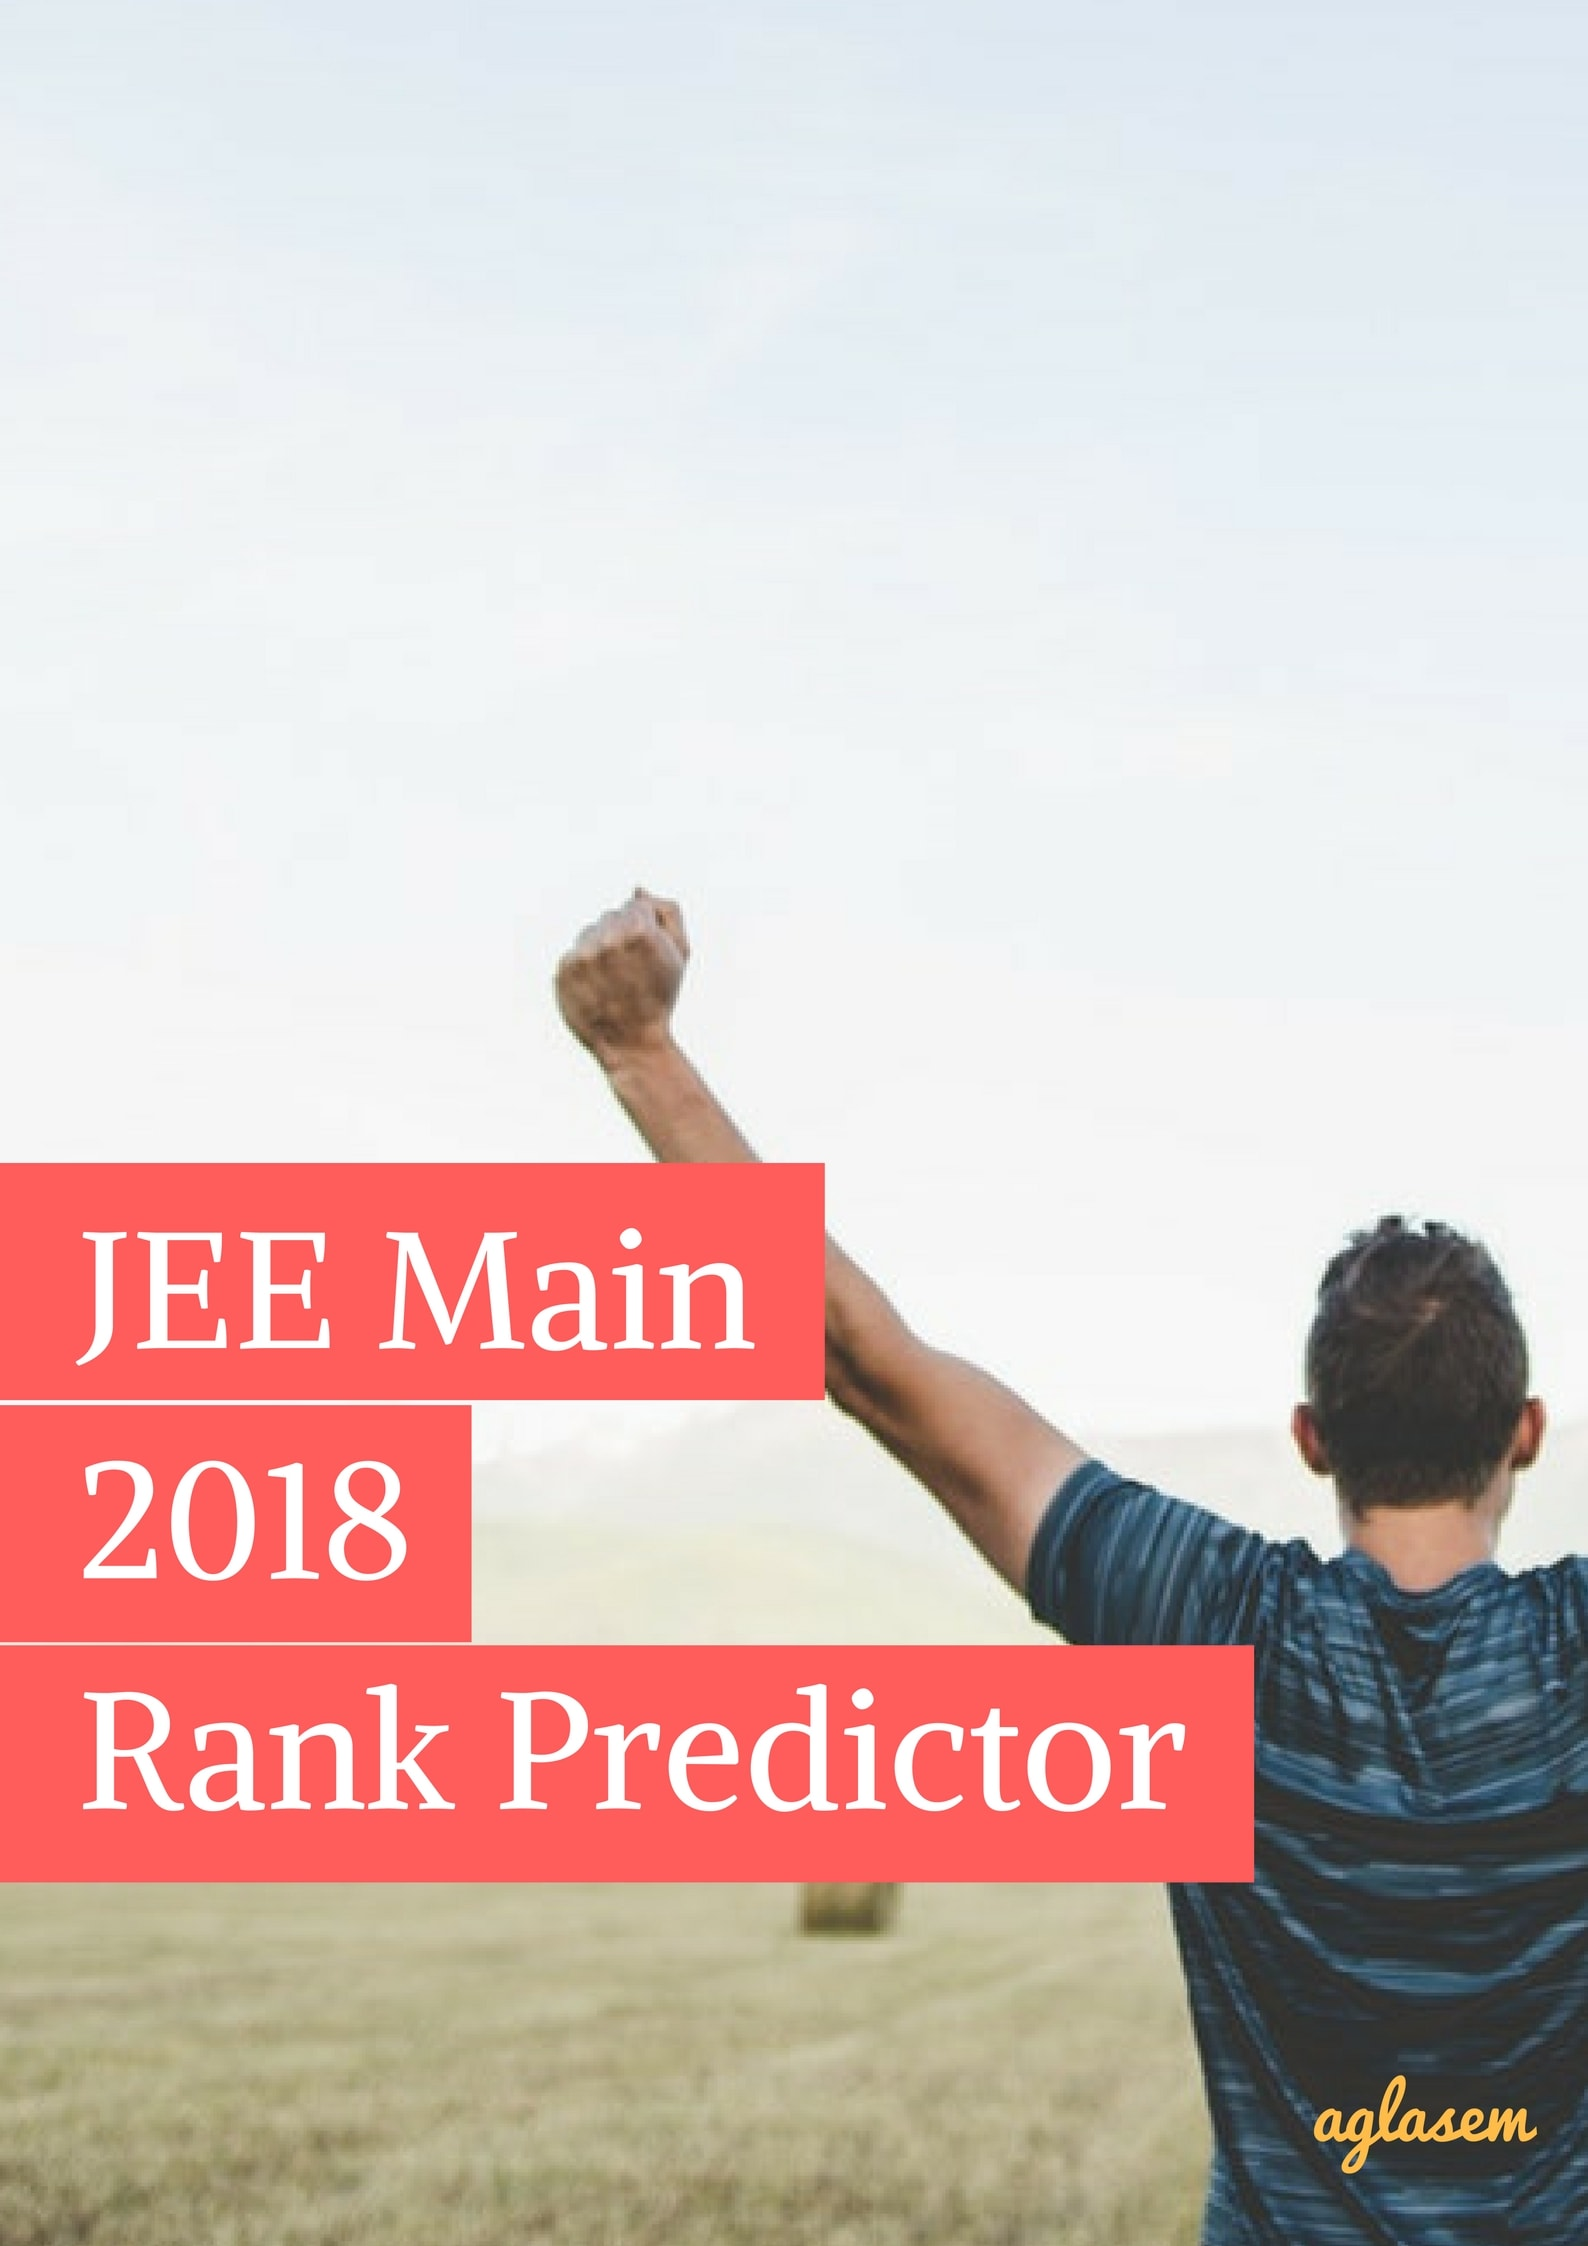 JEE Main 2018 Rank Predictor